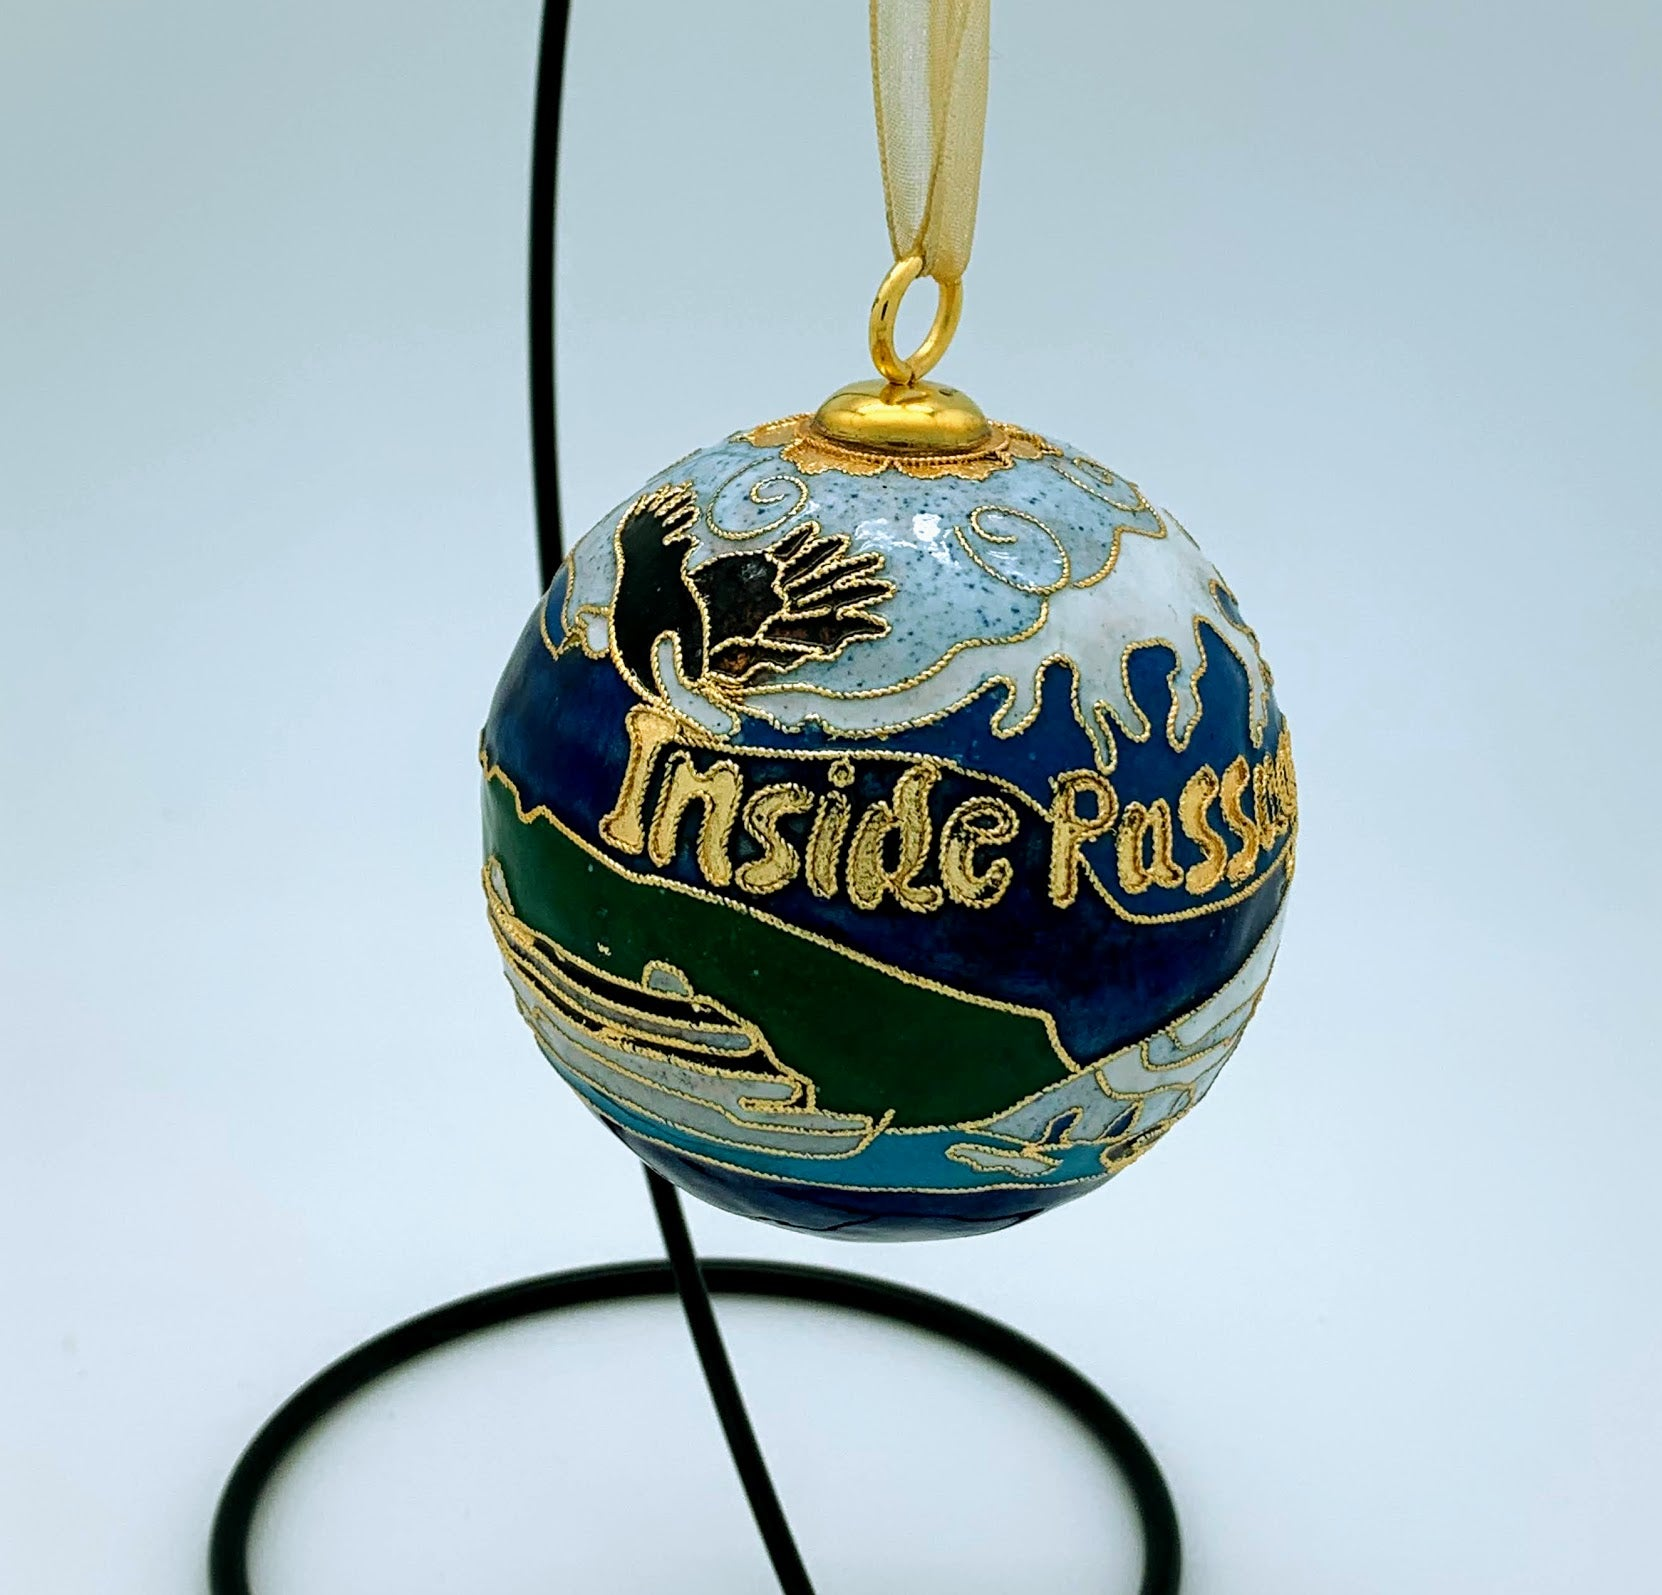 Heirloom Kitty Keller Ornament - Inside Passage